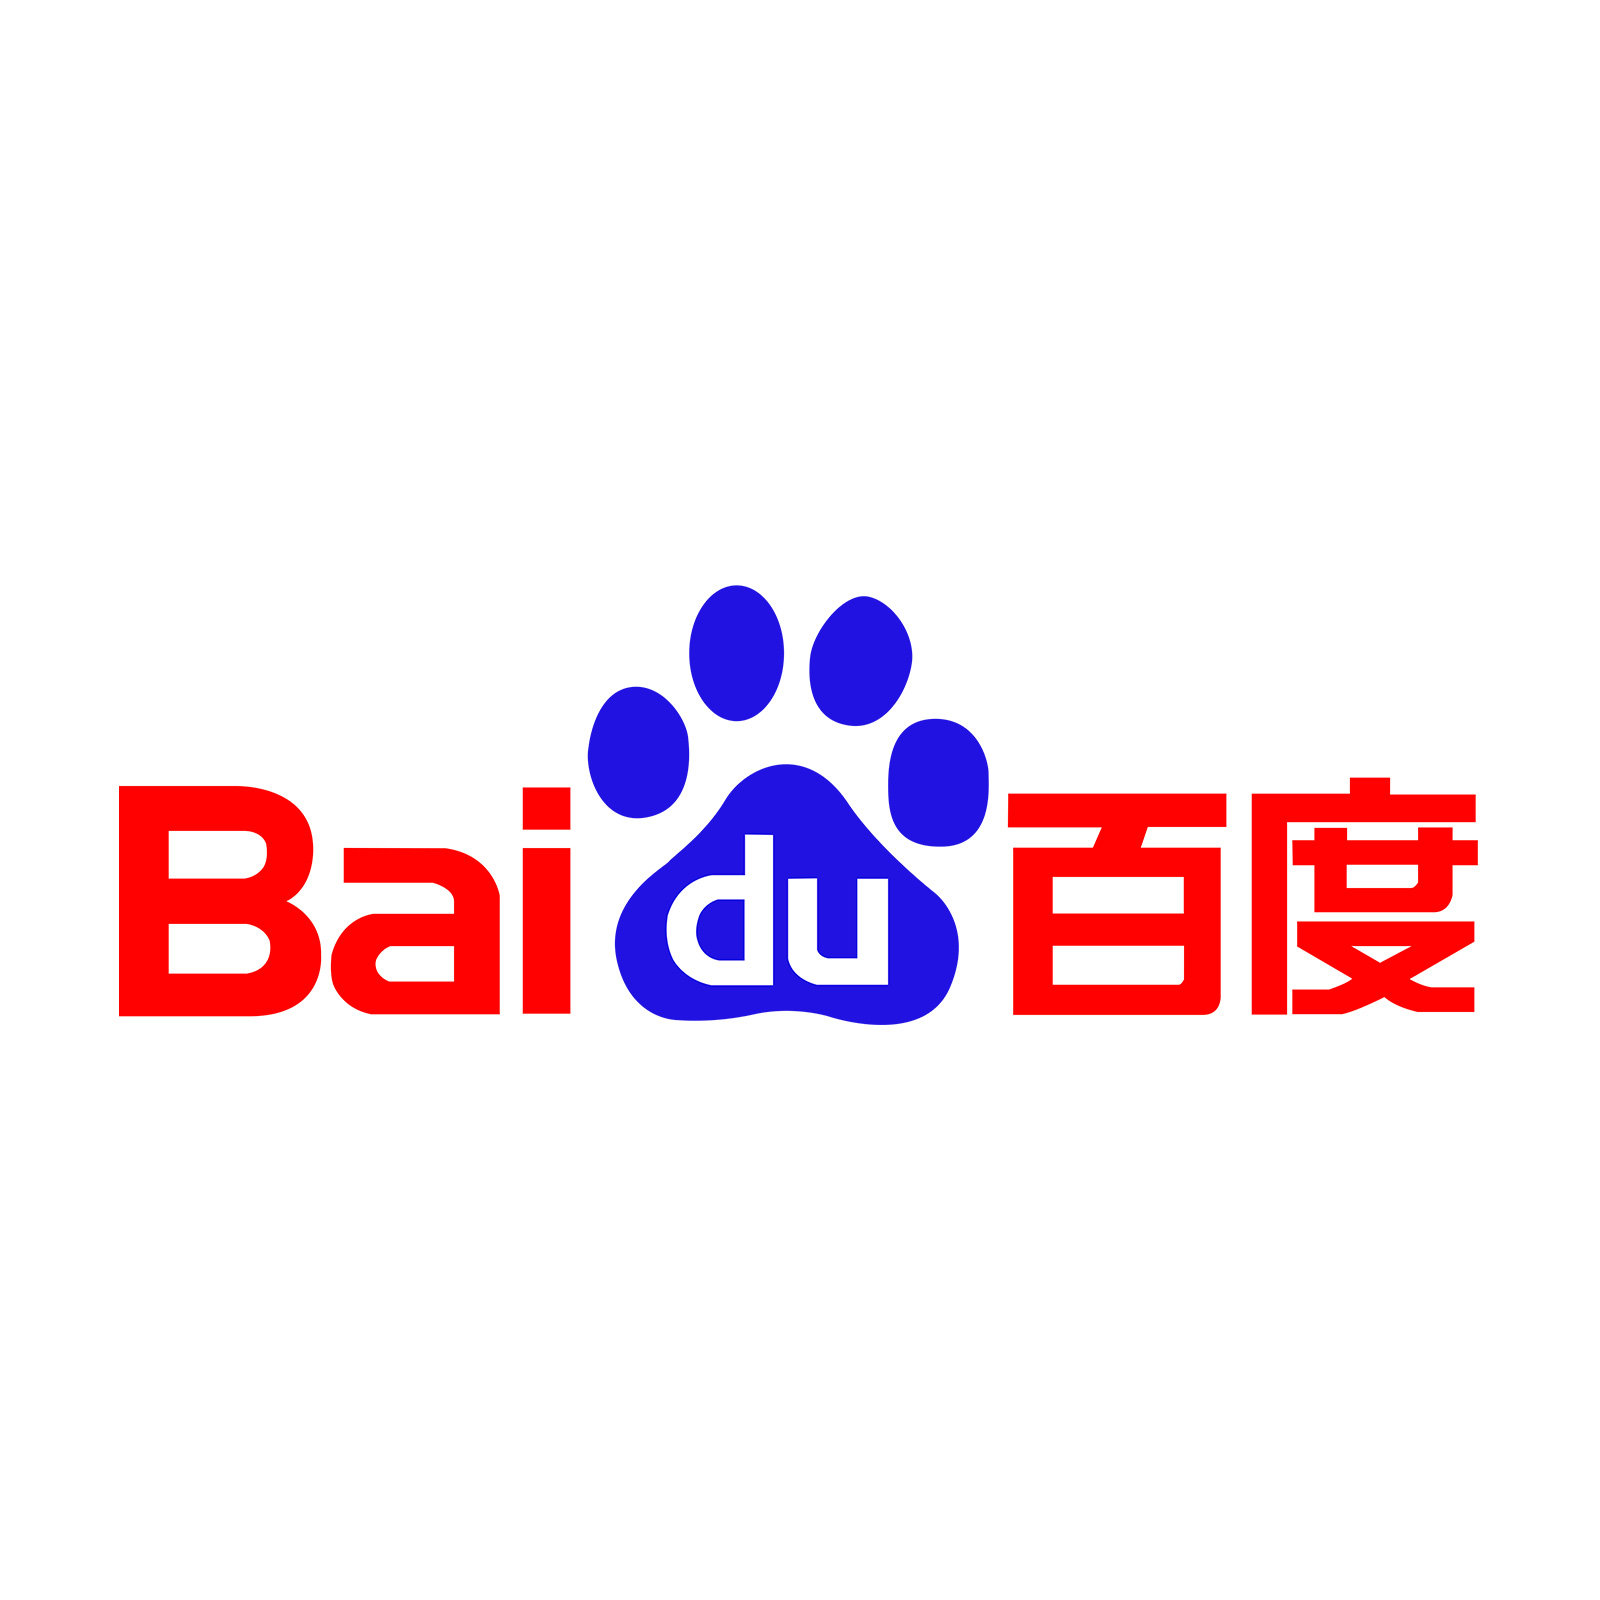 Offered by Baidu of China, a search engine company, Baidu Tieba (known as Postbar internationally) is a social forum network based on the keyword searches in the Baidu search engine. This discussion forum works on the unique concept of allowing you to create a social network group for a specific topic, using the search, or even to join an existing online social group.